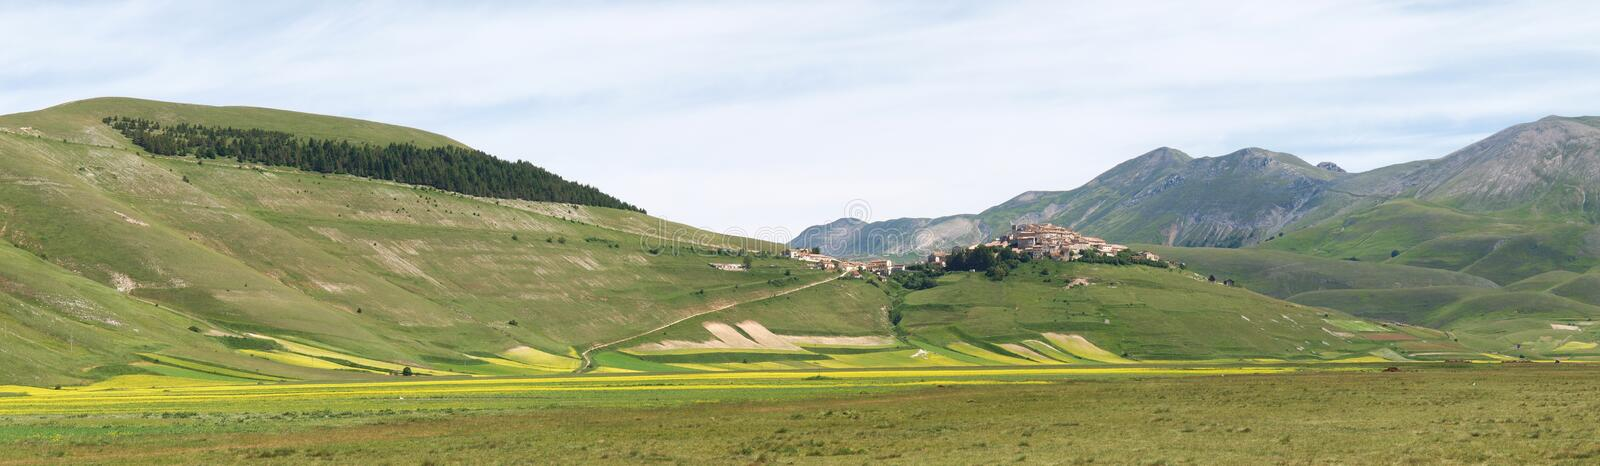 Castelluccio Di Norcia. Cultivation Of Lentils Stock Photo